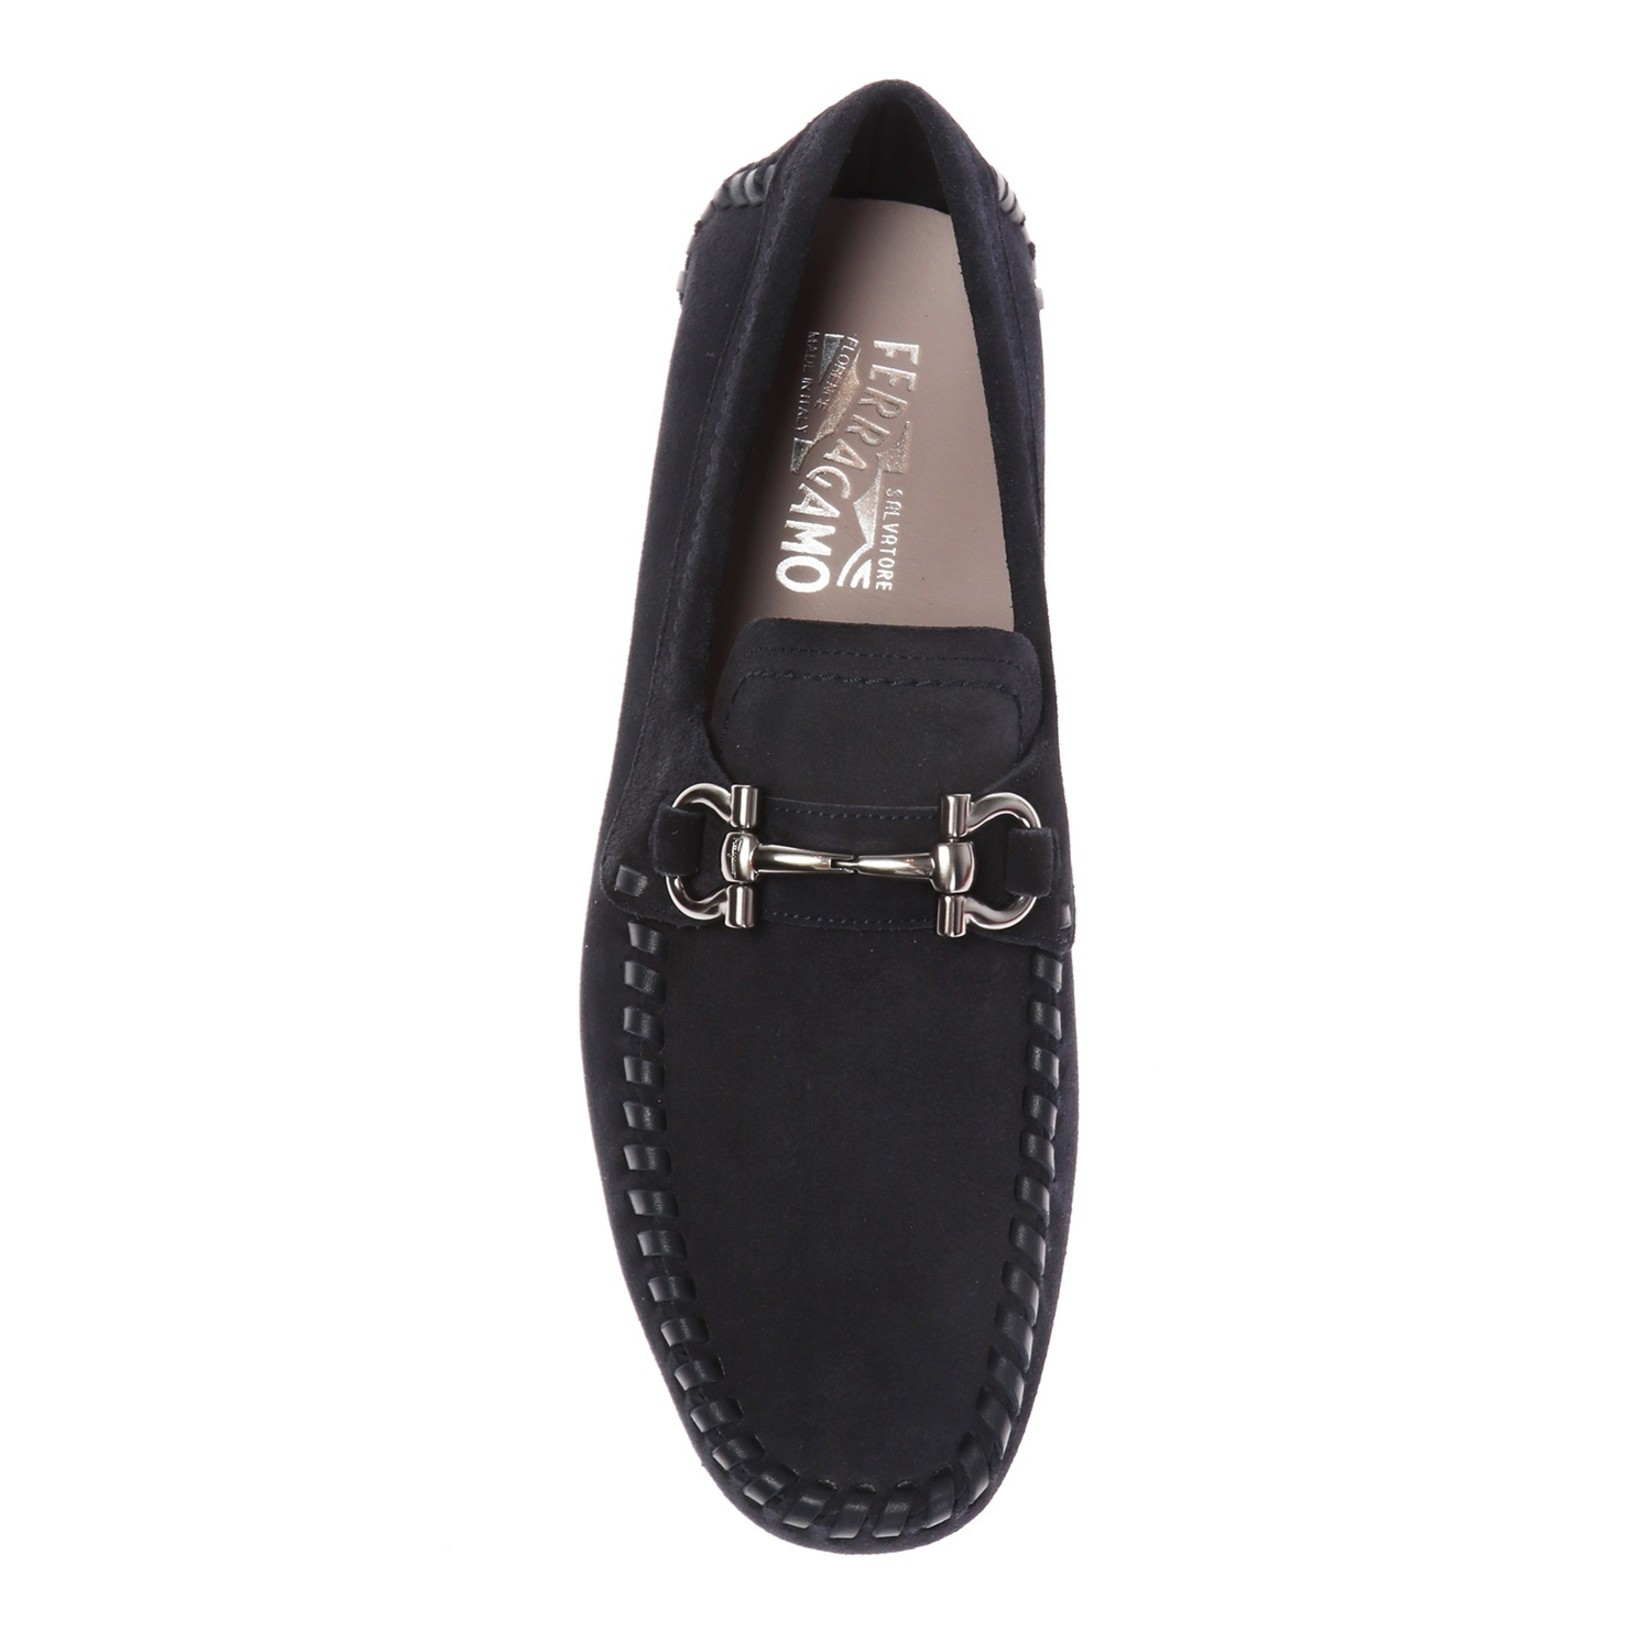 SALVATORE FERRAGAMO SALVATORE FERRAGAMO - LOAFER PARIGI IN - 703724